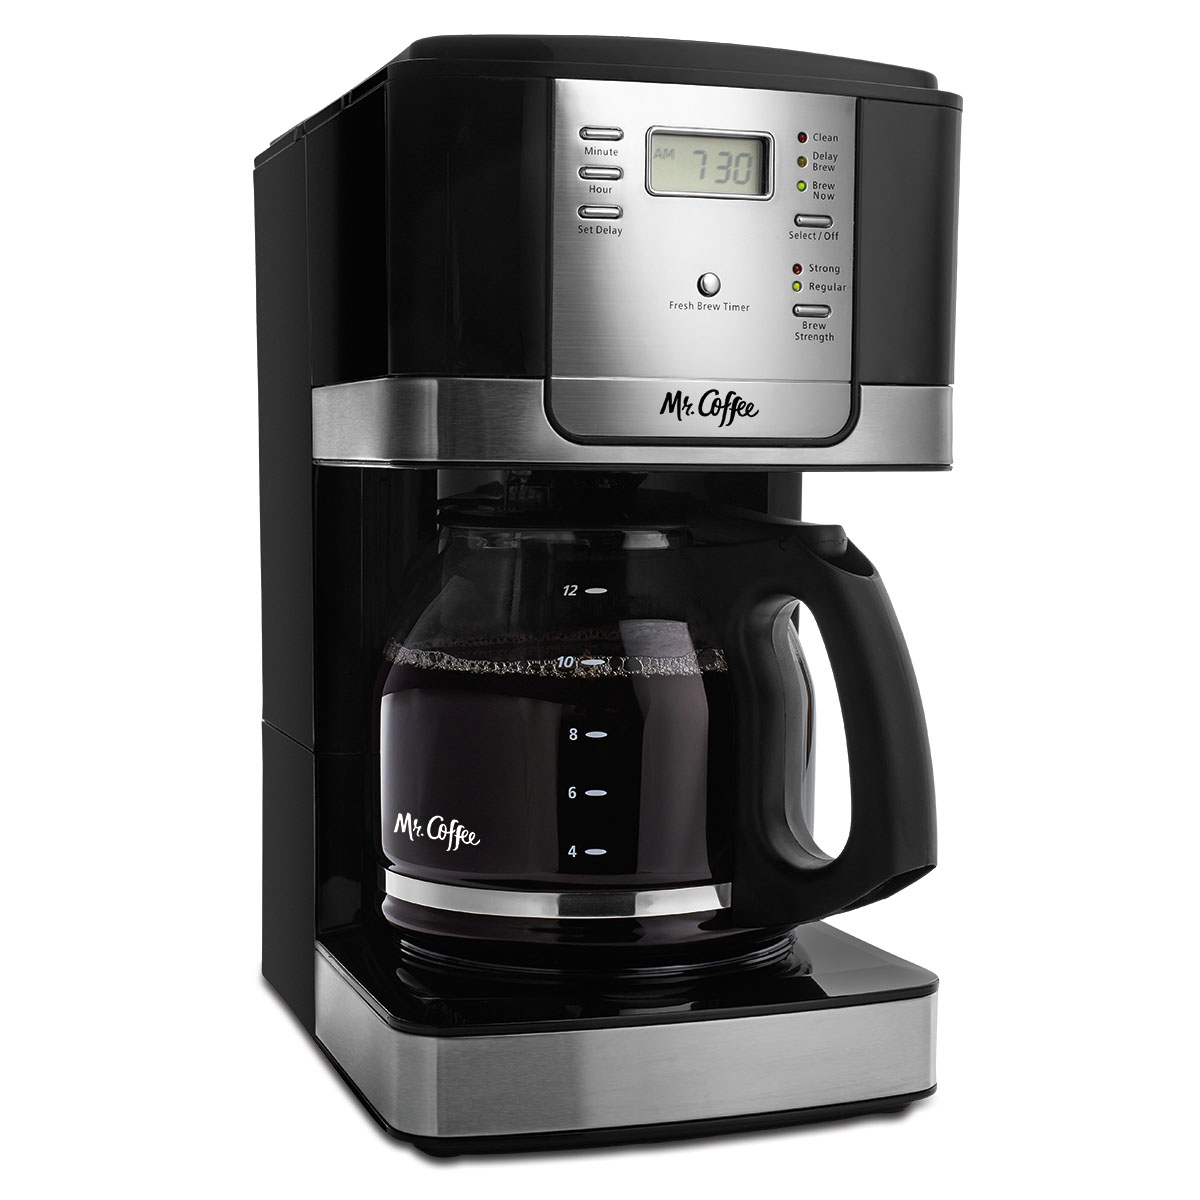 Mr. Coffee Advanced Brew 12-Cup Programmable Coffee Maker Black/Stainless Steel 72179230175 eBay